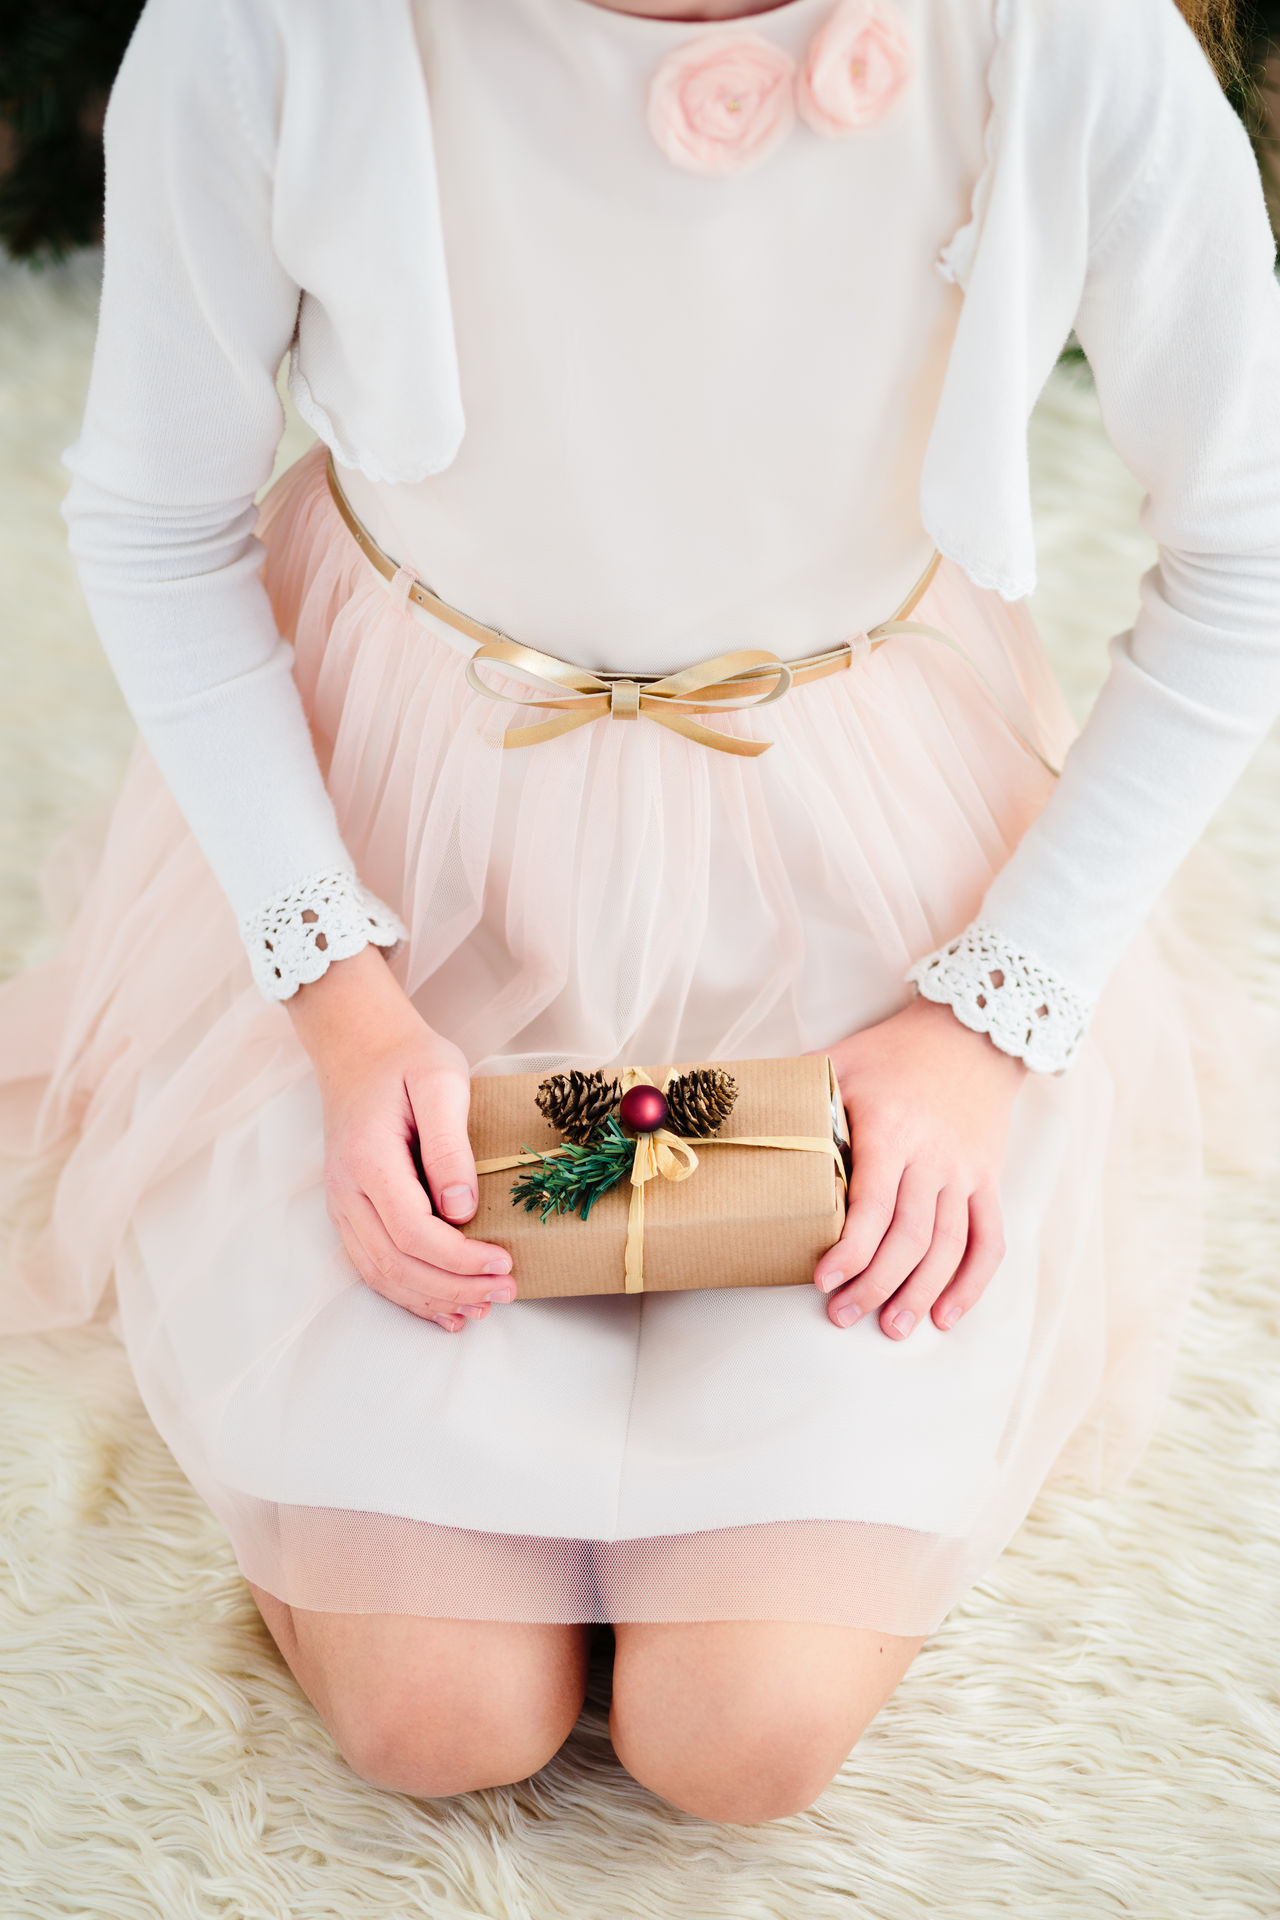 Girl wearing dress holding Christmas gift and sitting on a carpet Celebrating Celebration Child Childhood Christmas Christmastime Decorated Dress Gift Girl Holding Holiday Home Light Person Present Red Tree Vertical Wrapped Young